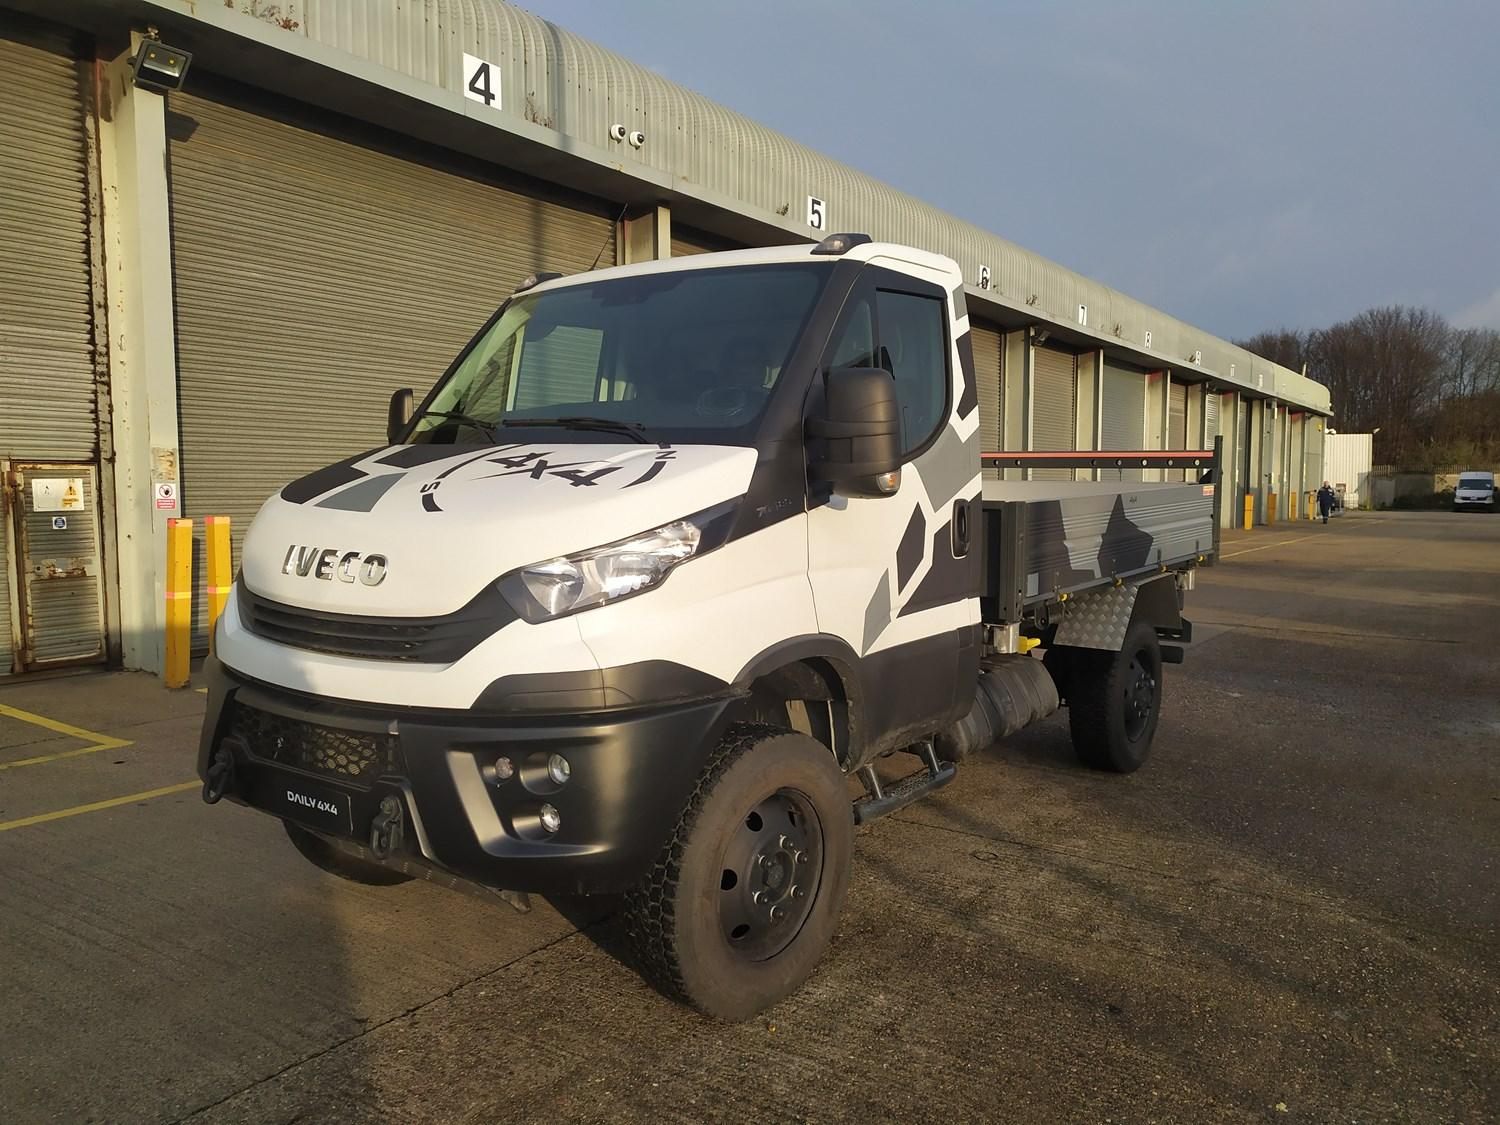 New IVECO Daily 4x4 Tour